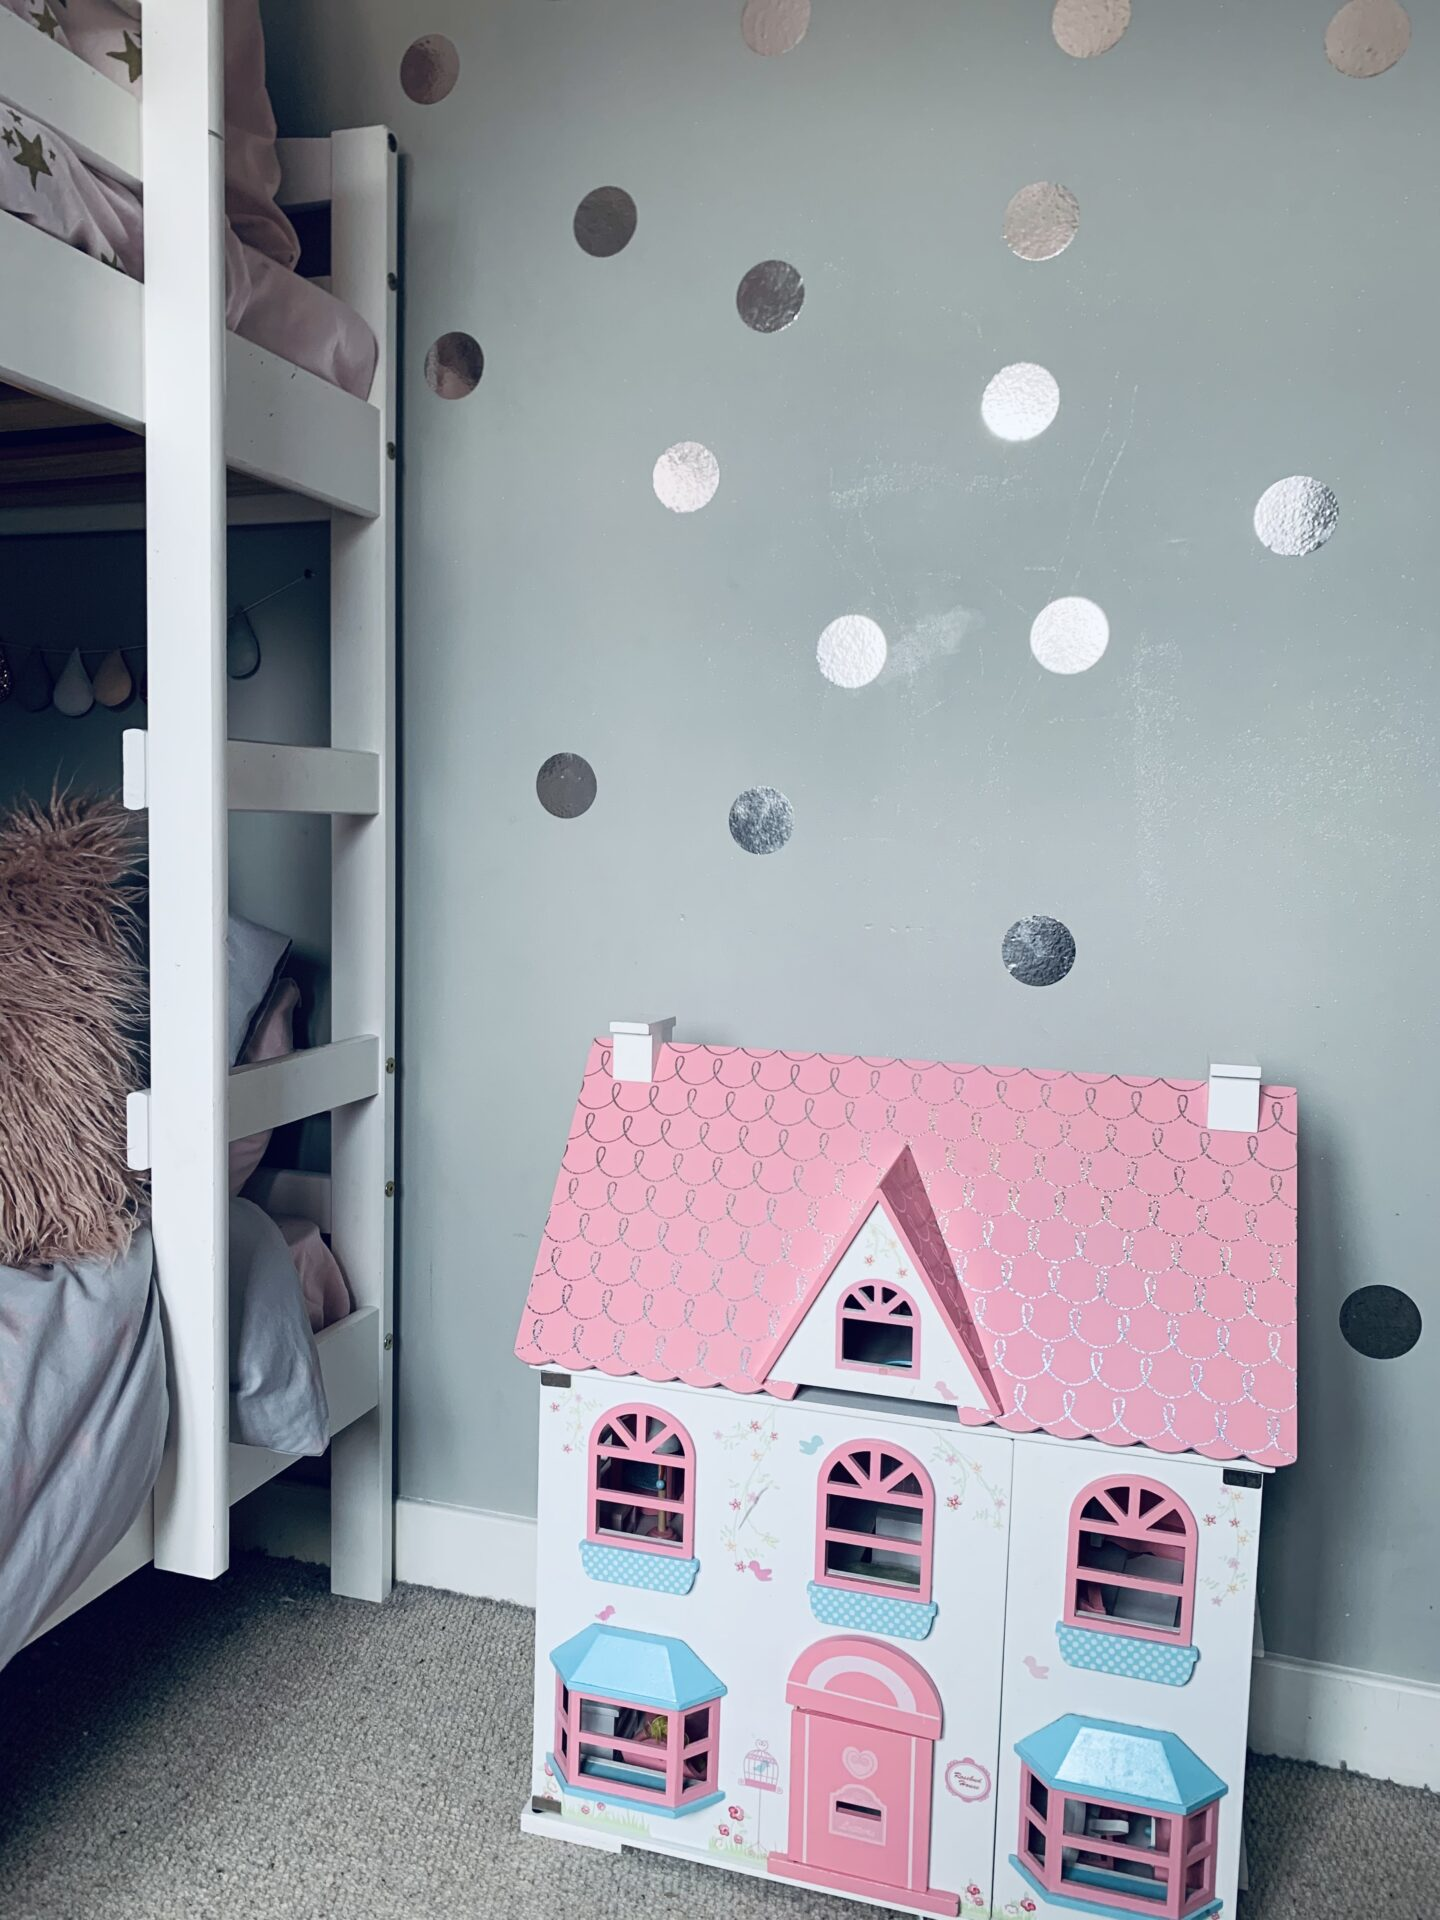 Sharing a bedroom tips and tricks (particularly if you have a large age gap)